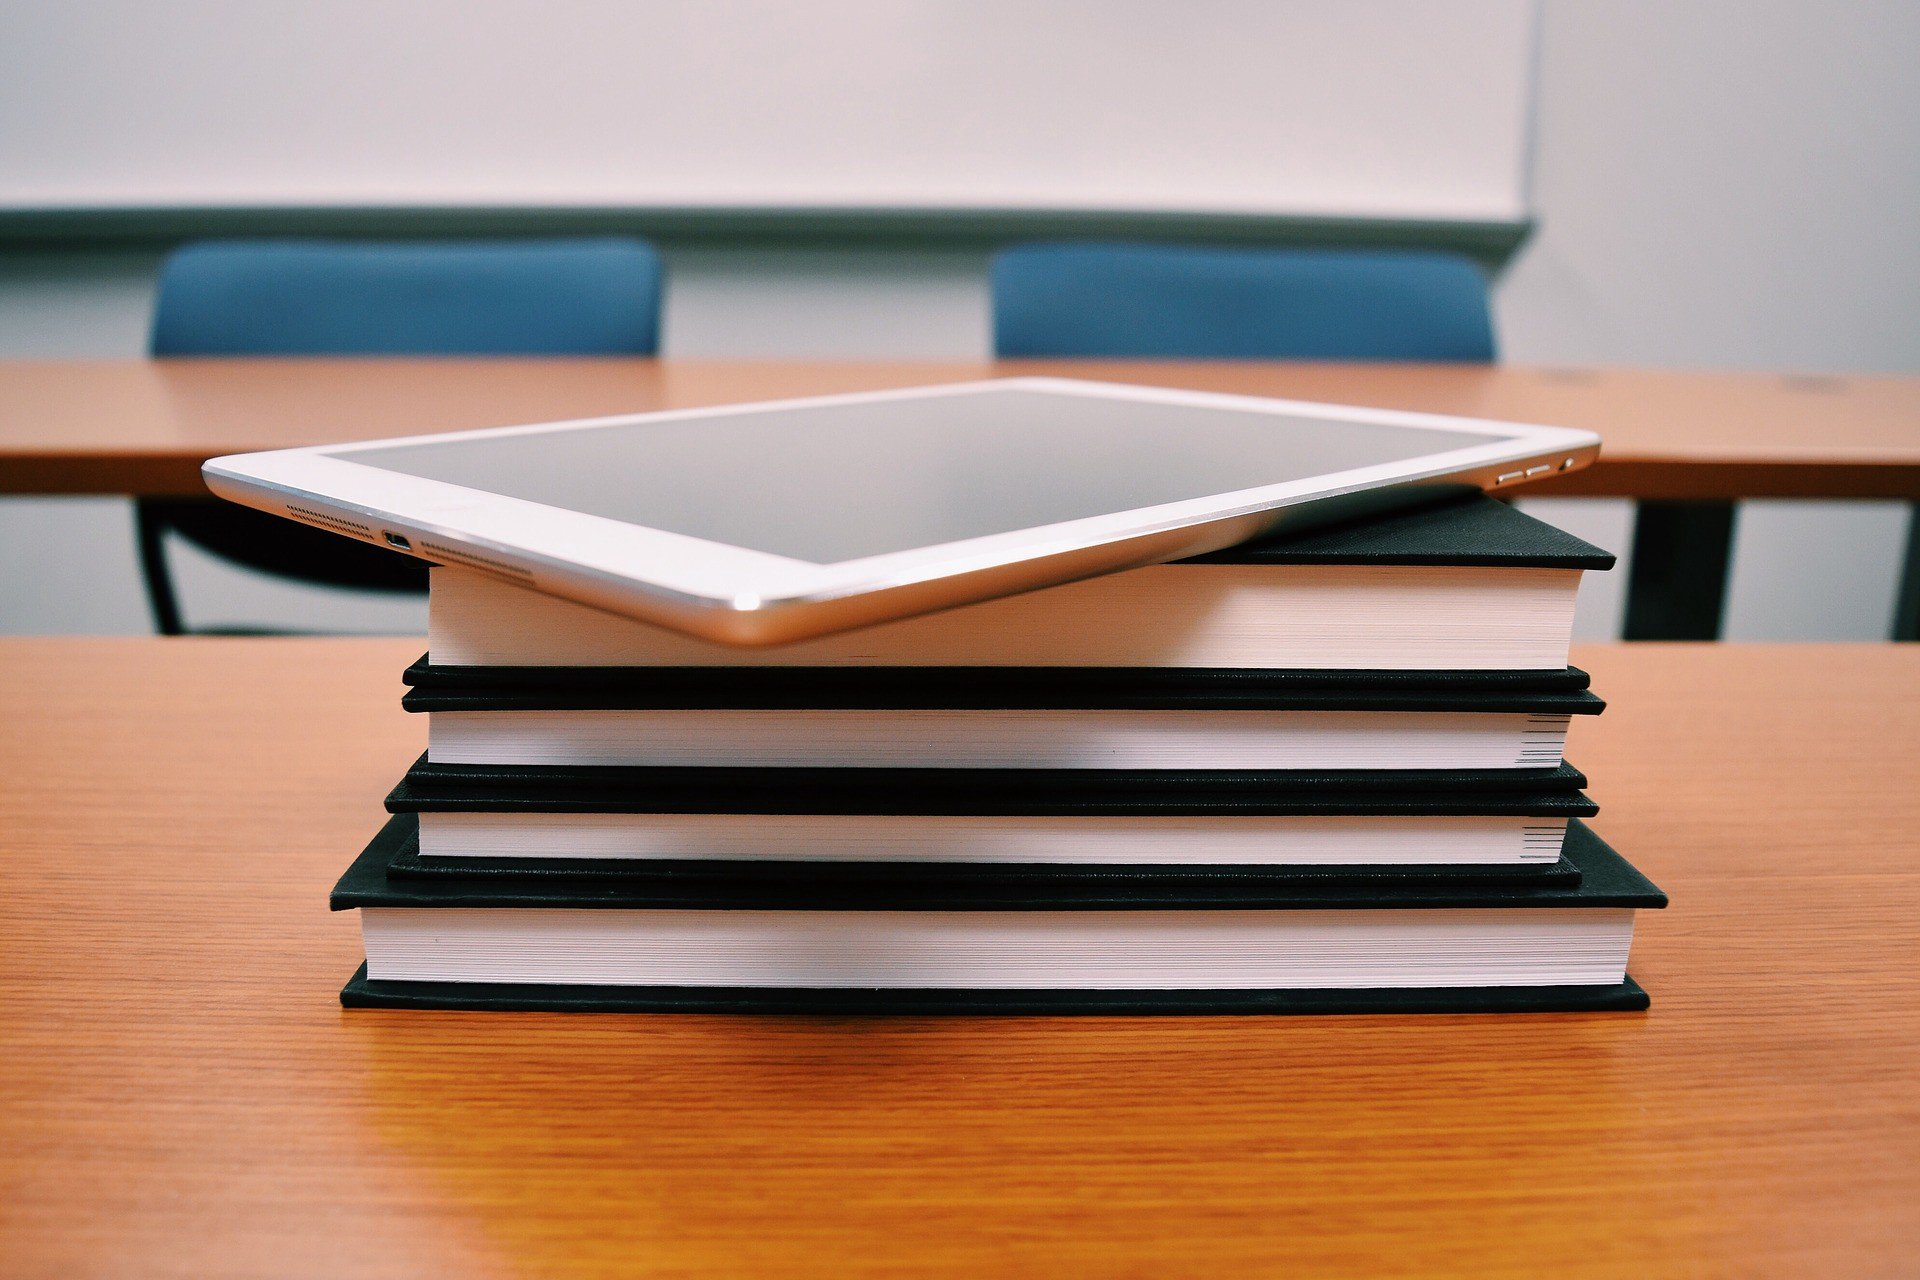 13 of the Latest Trends in Educational Technology - Keith